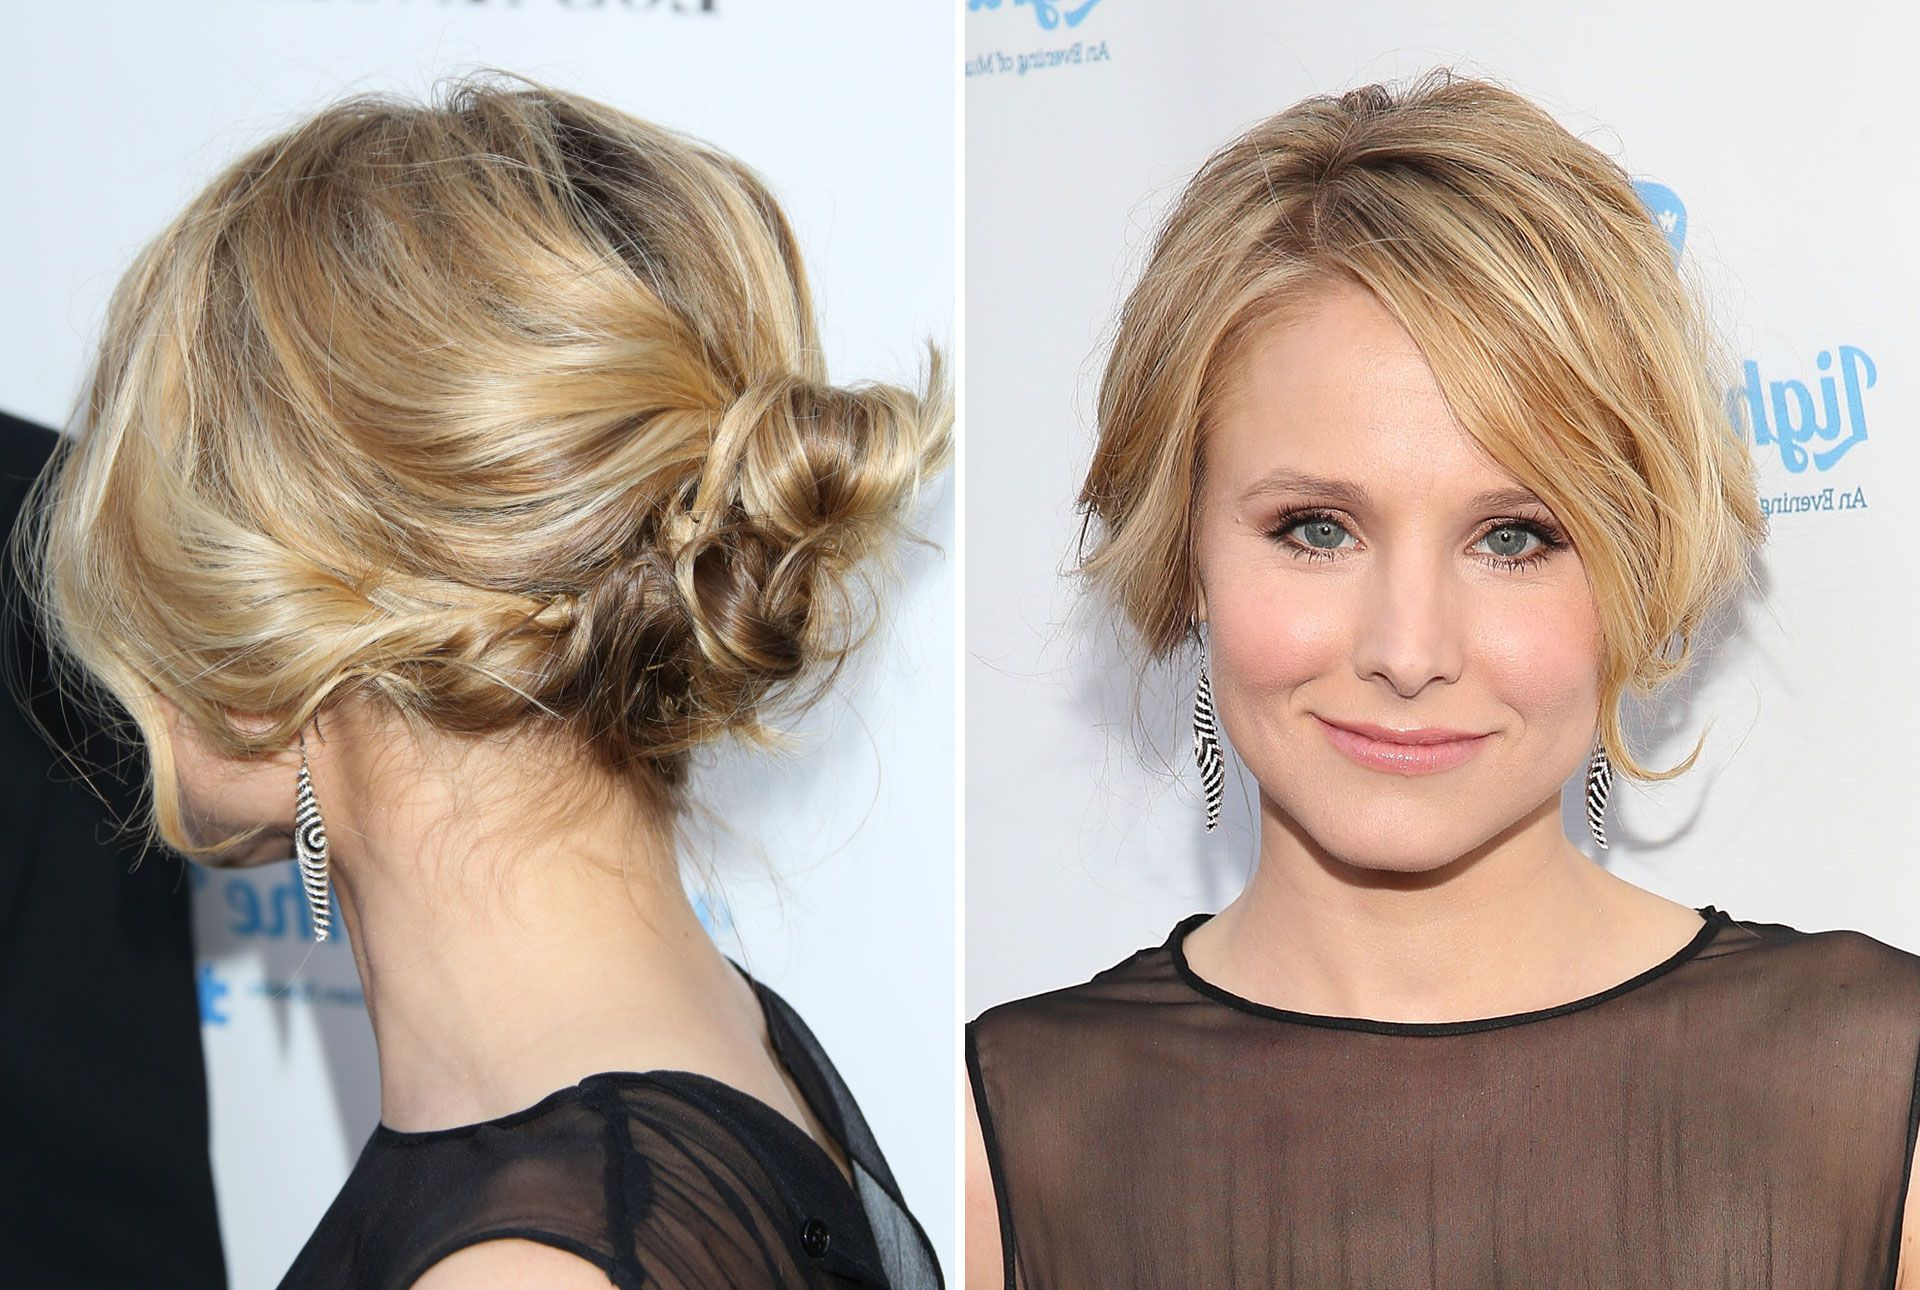 20 Easy Wedding Guest Hairstyles – Best Hair Ideas For Wedding Guests Pertaining To Hairstyles For Short Hair For Wedding (View 20 of 25)